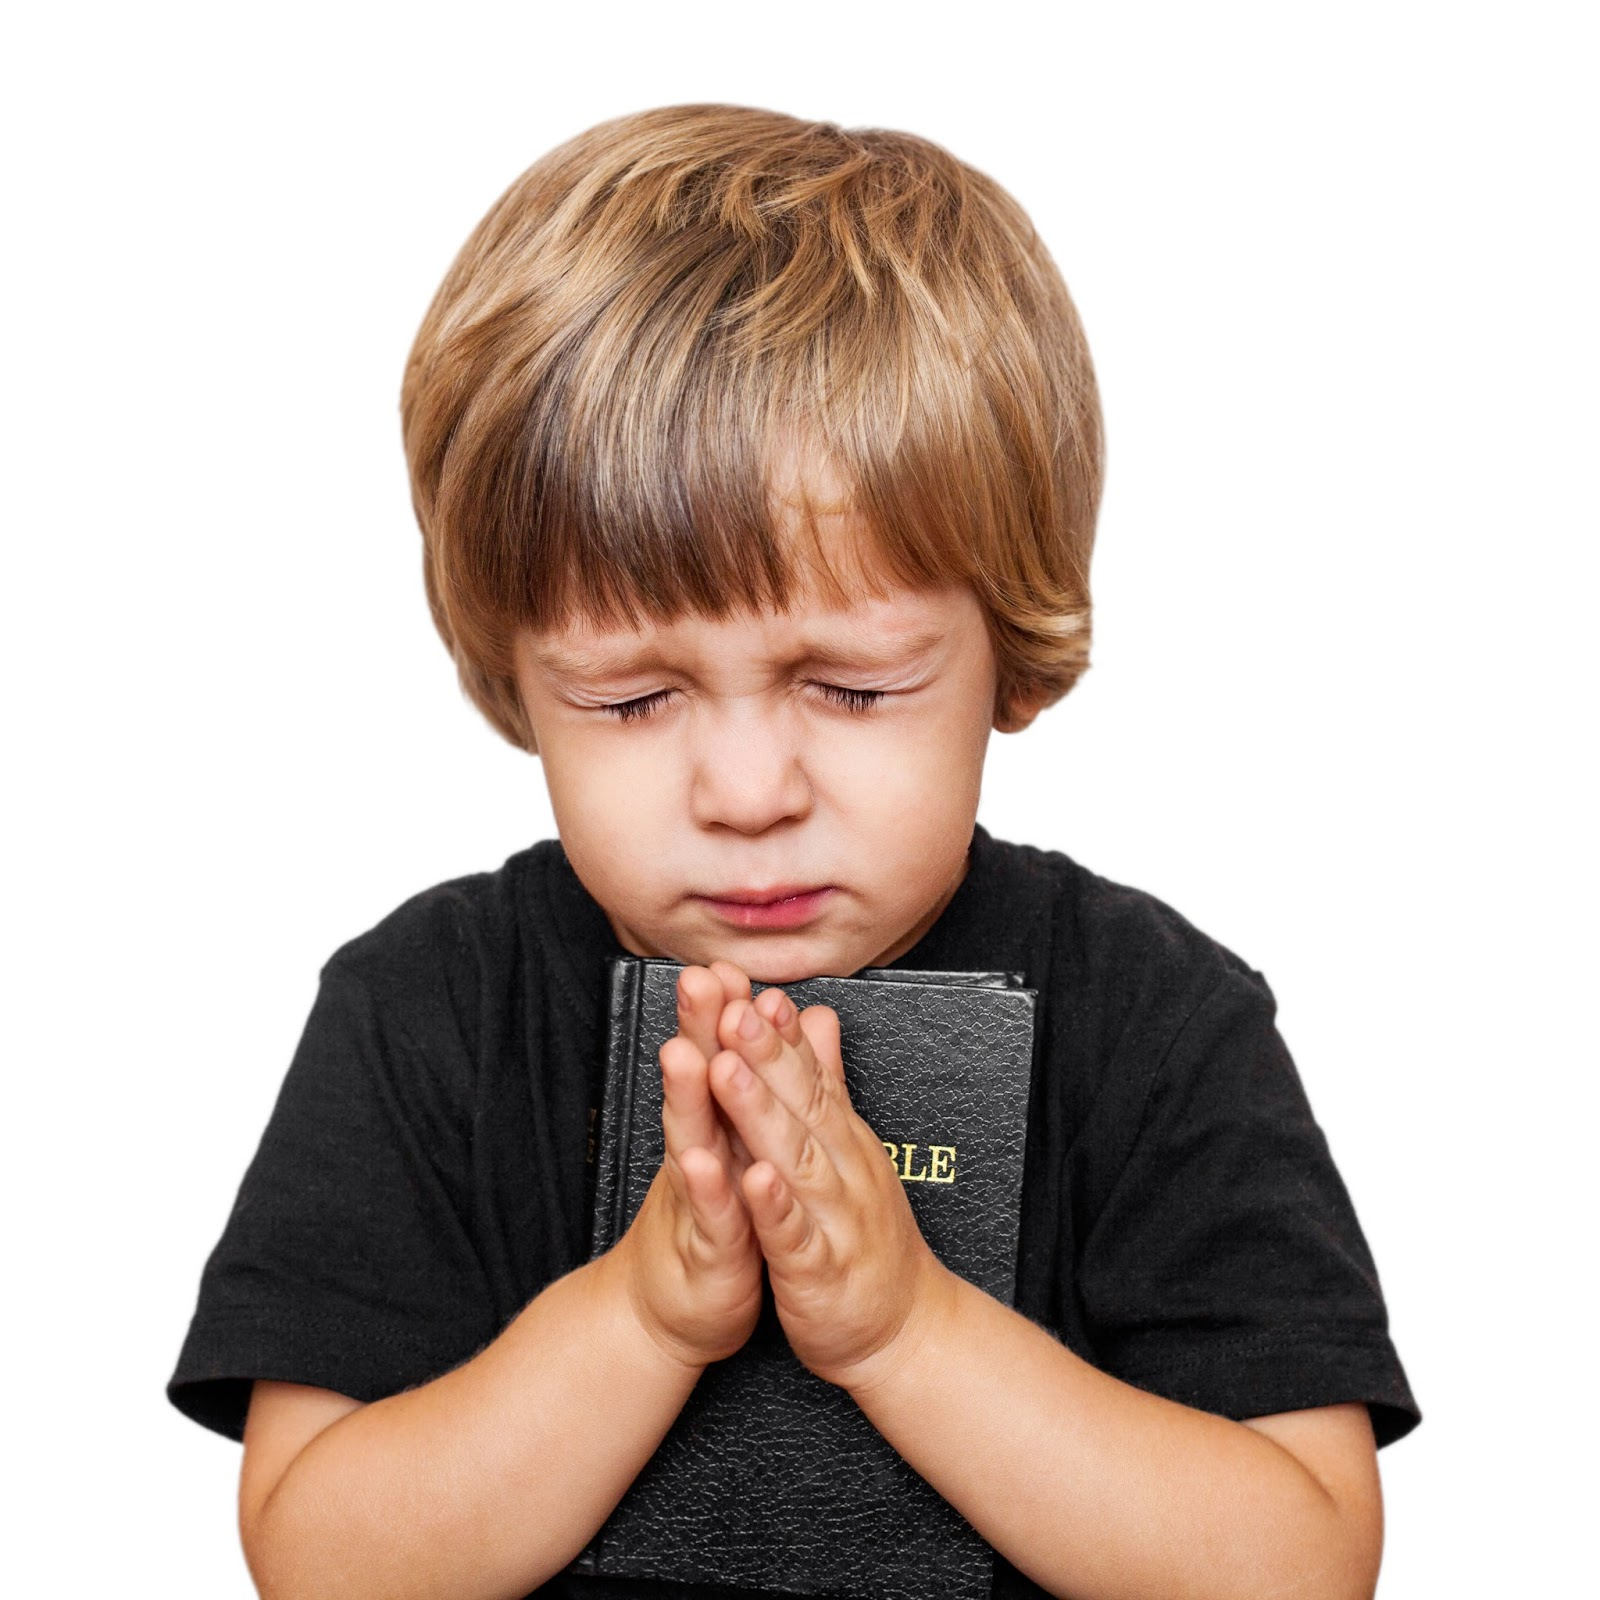 Teaching Kids To Pray Prevents Them From Becoming Problem Solvers?